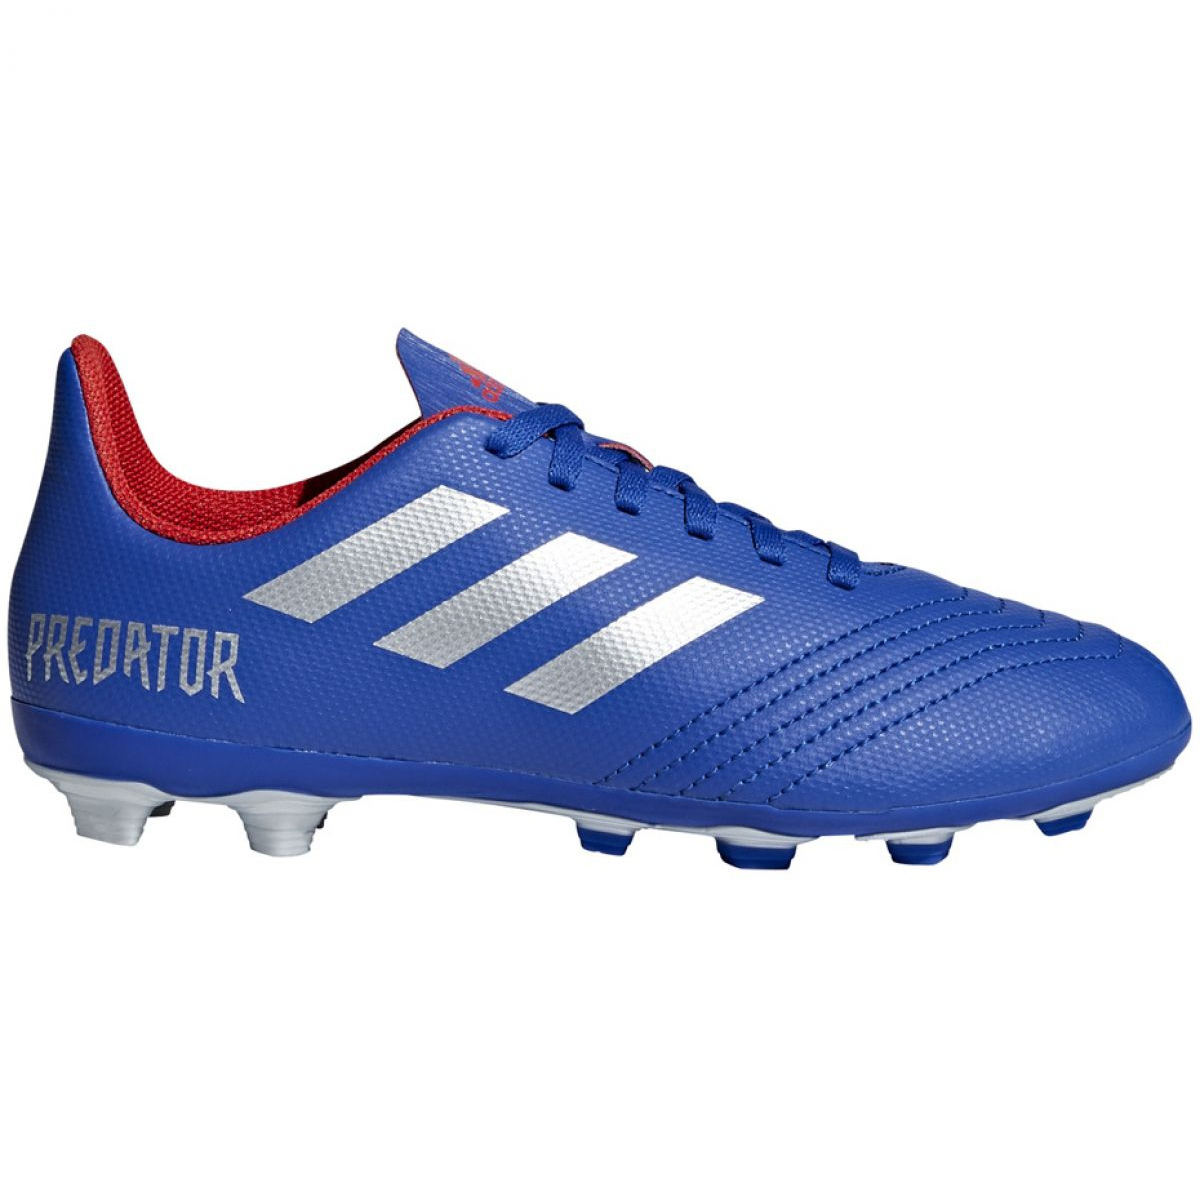 official photos 0a27a ebfc9 Scarpe da calcio adidas Predator 19.4 FxG Jr CM8540